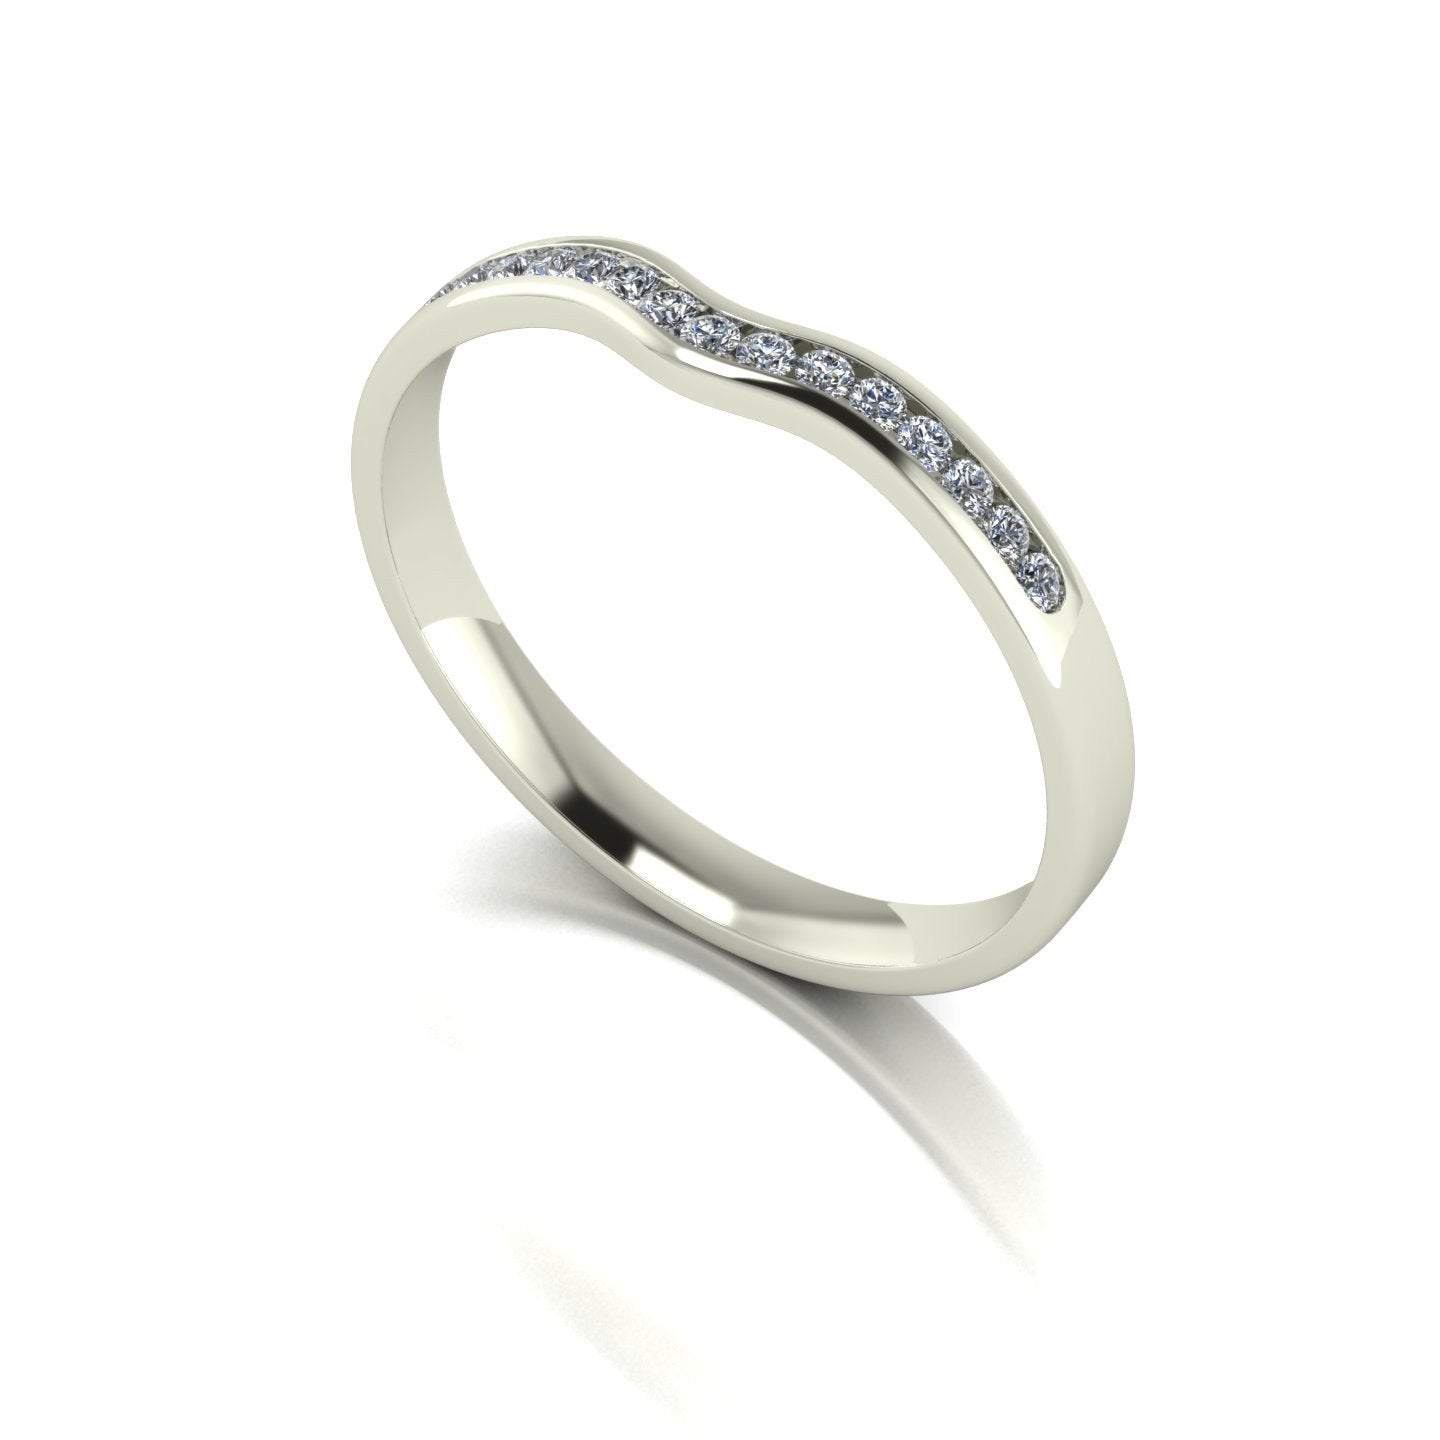 0.15ct (15x 1.3mm) Round Moissanite Set Eternity Ring